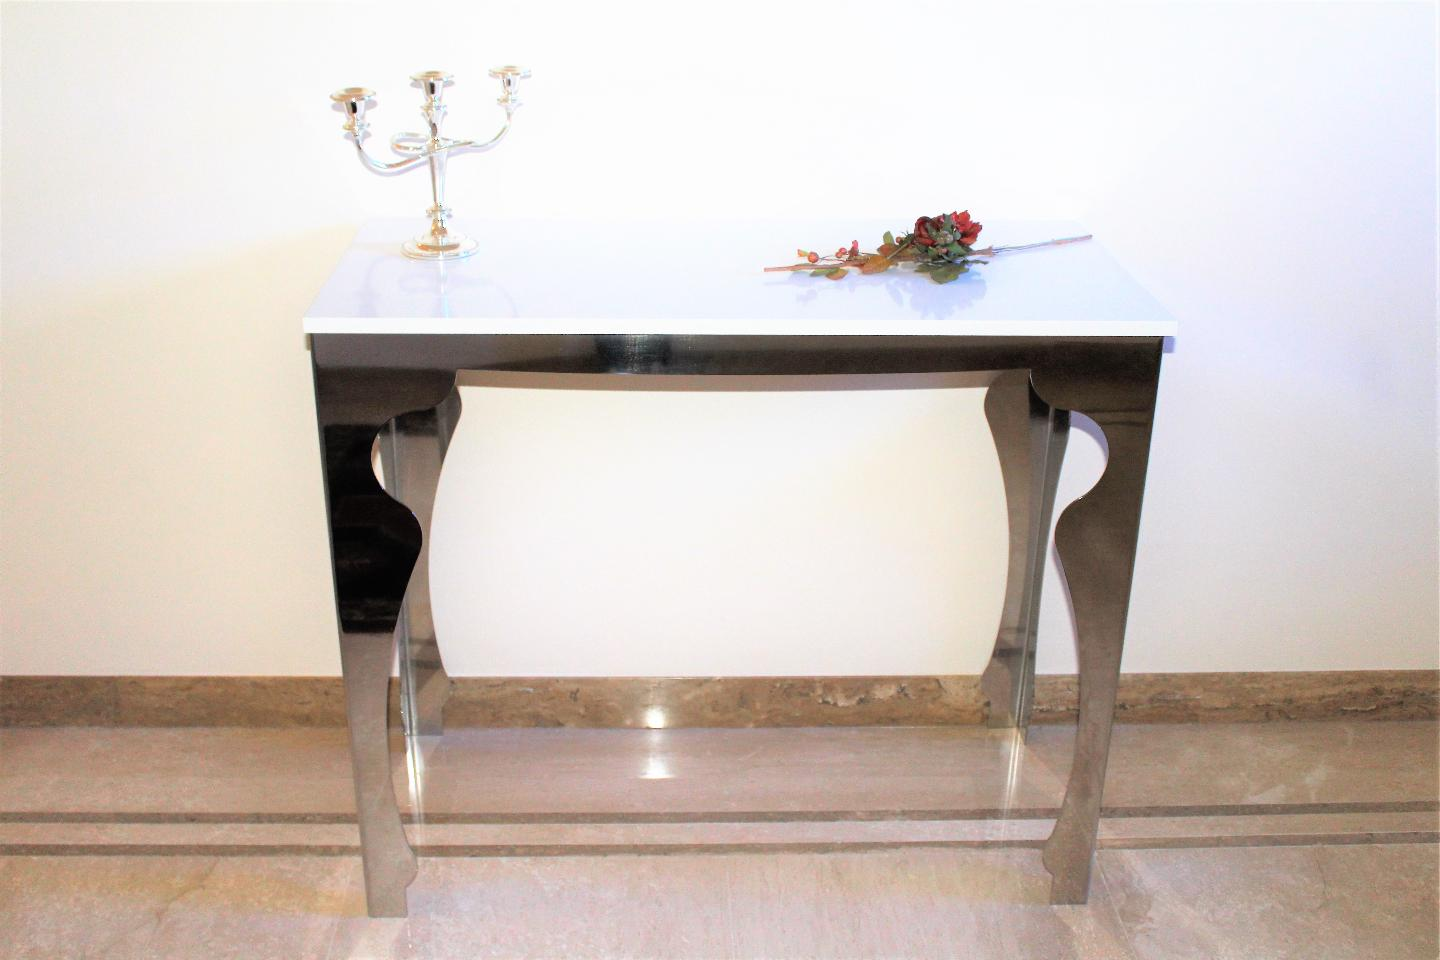 Tavolo consolle in acciaio inox table structure in stainless steel